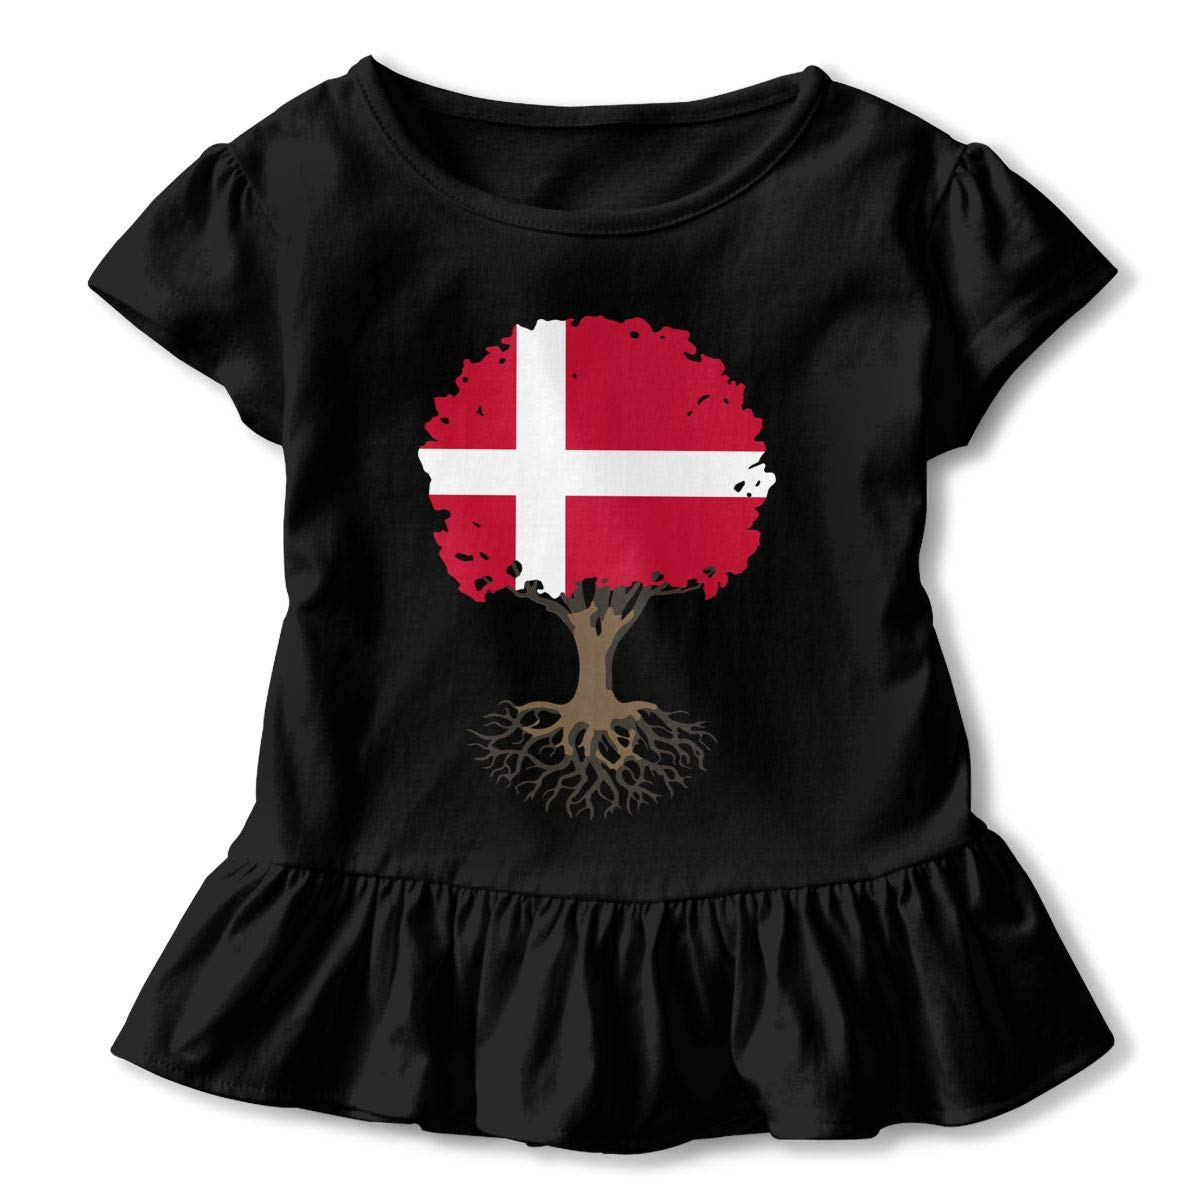 HYBDX9T Little Girls Tree of Life with Denmark Flag Funny Short Sleeve Cotton T Shirts Basic Tops Tee Clothes